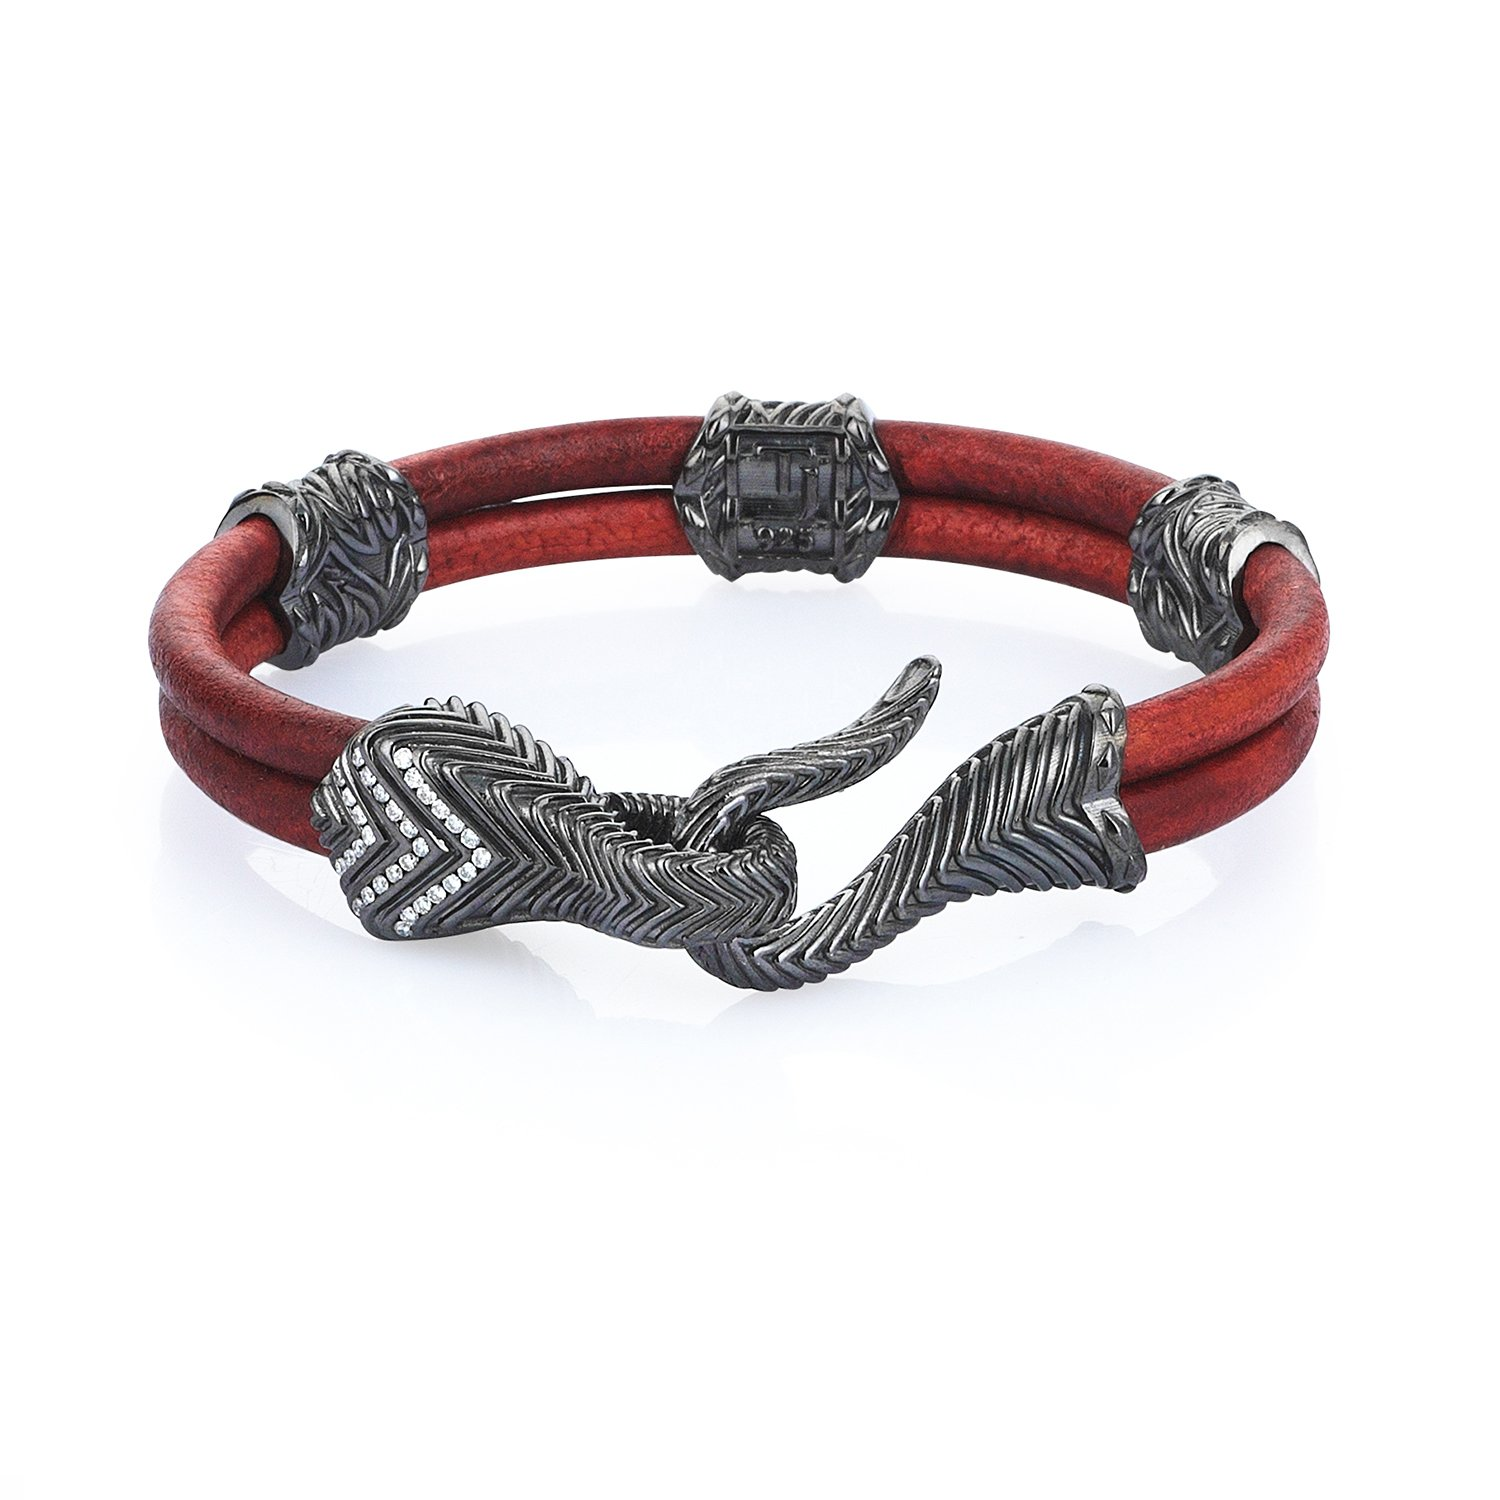 Sterling Silver Serpi Bracelet with Diamonds in Natural Brick Leather